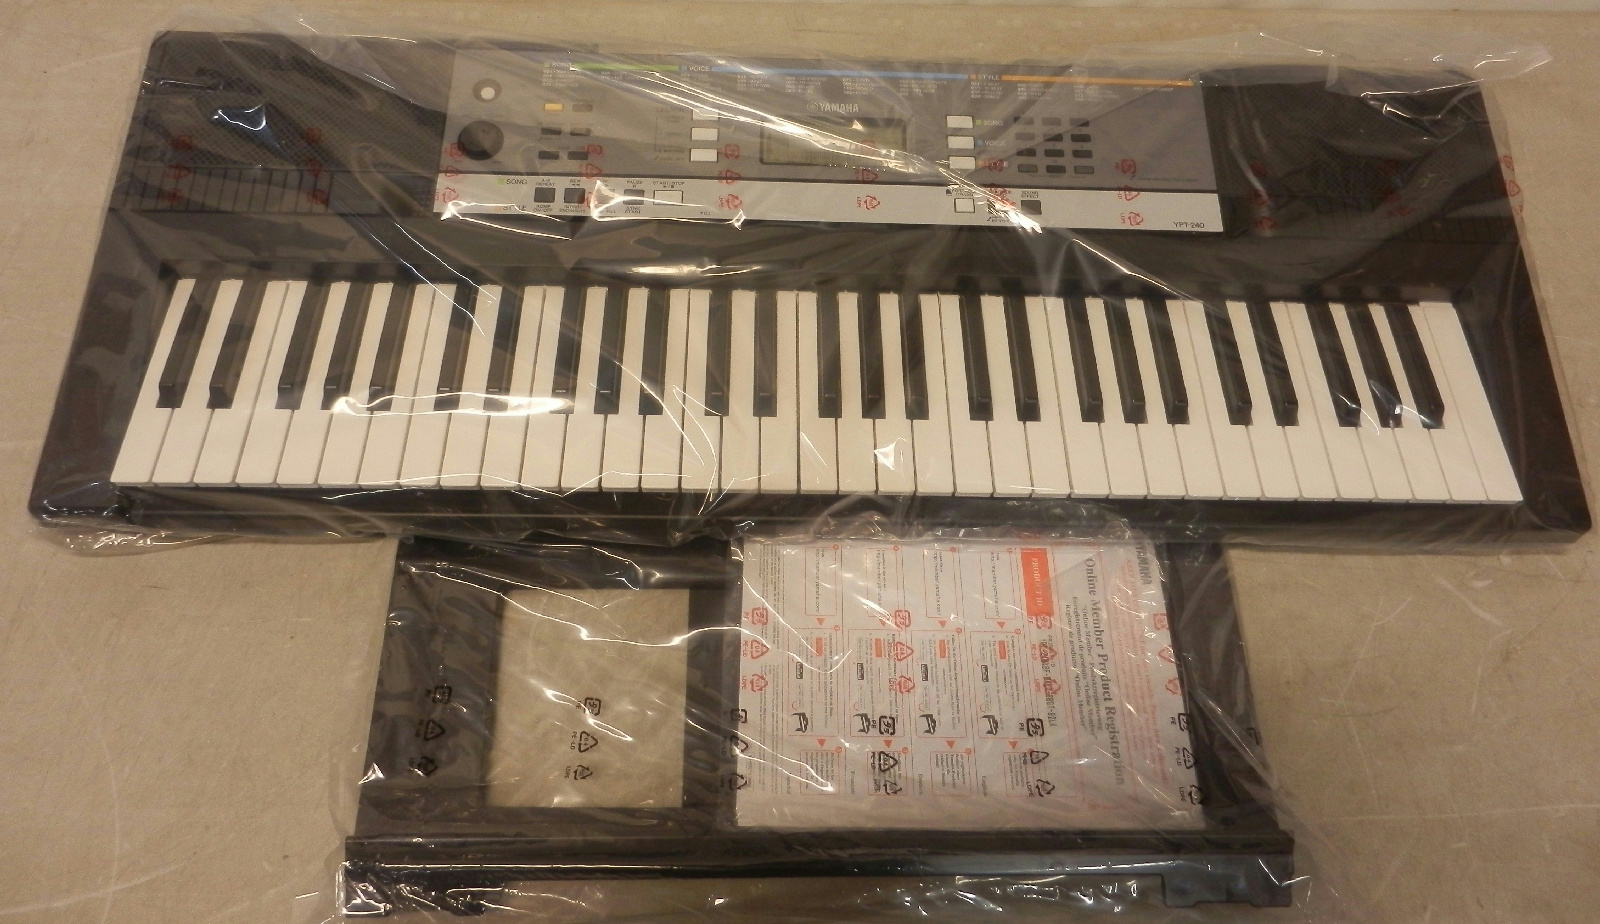 yamaha ypt 240 stand alone 61 key portable keyboard ebay. Black Bedroom Furniture Sets. Home Design Ideas